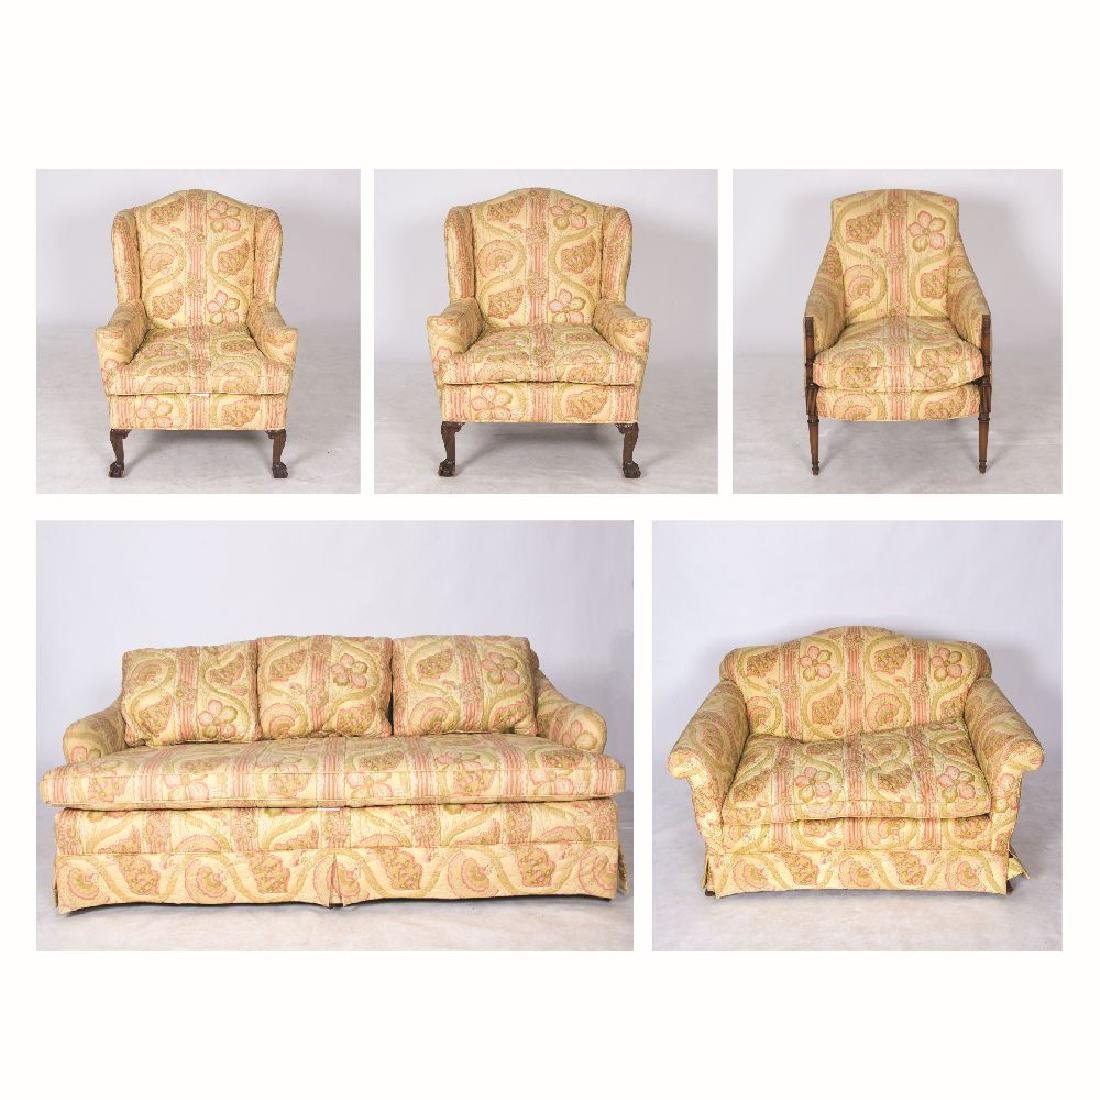 A Five Piece Custom Quilted Upholstered Living Room